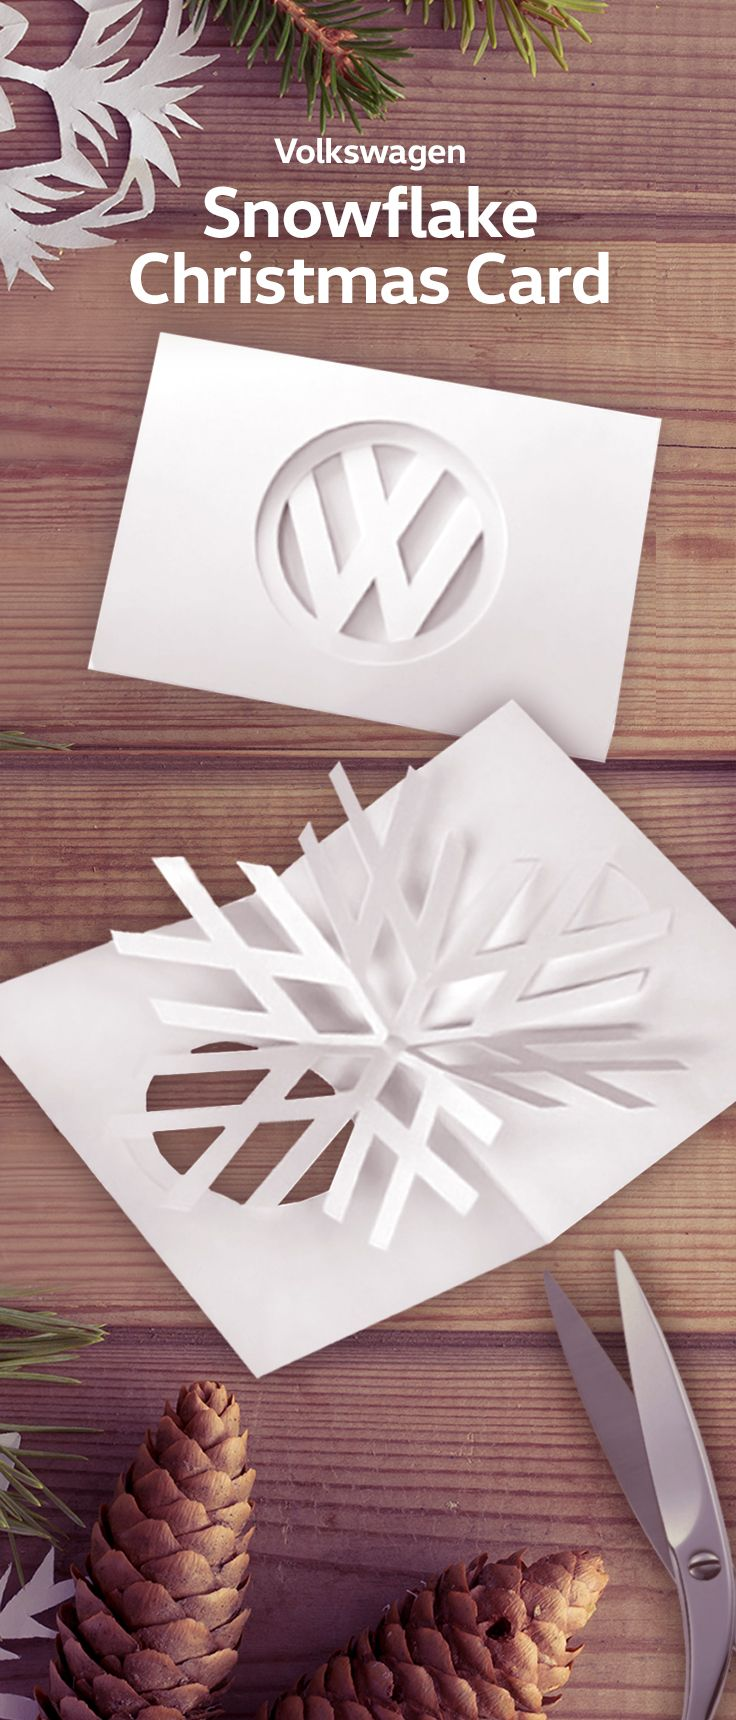 It's wonderful to show your loved ones how much they mean to you. Just a few words on a beautiful card can mean the world and Volkswagen invites you to create your own Volkswagen Snowflake Christmas card! You can download the instructions here: http://volkswagen.com/christmas-card.